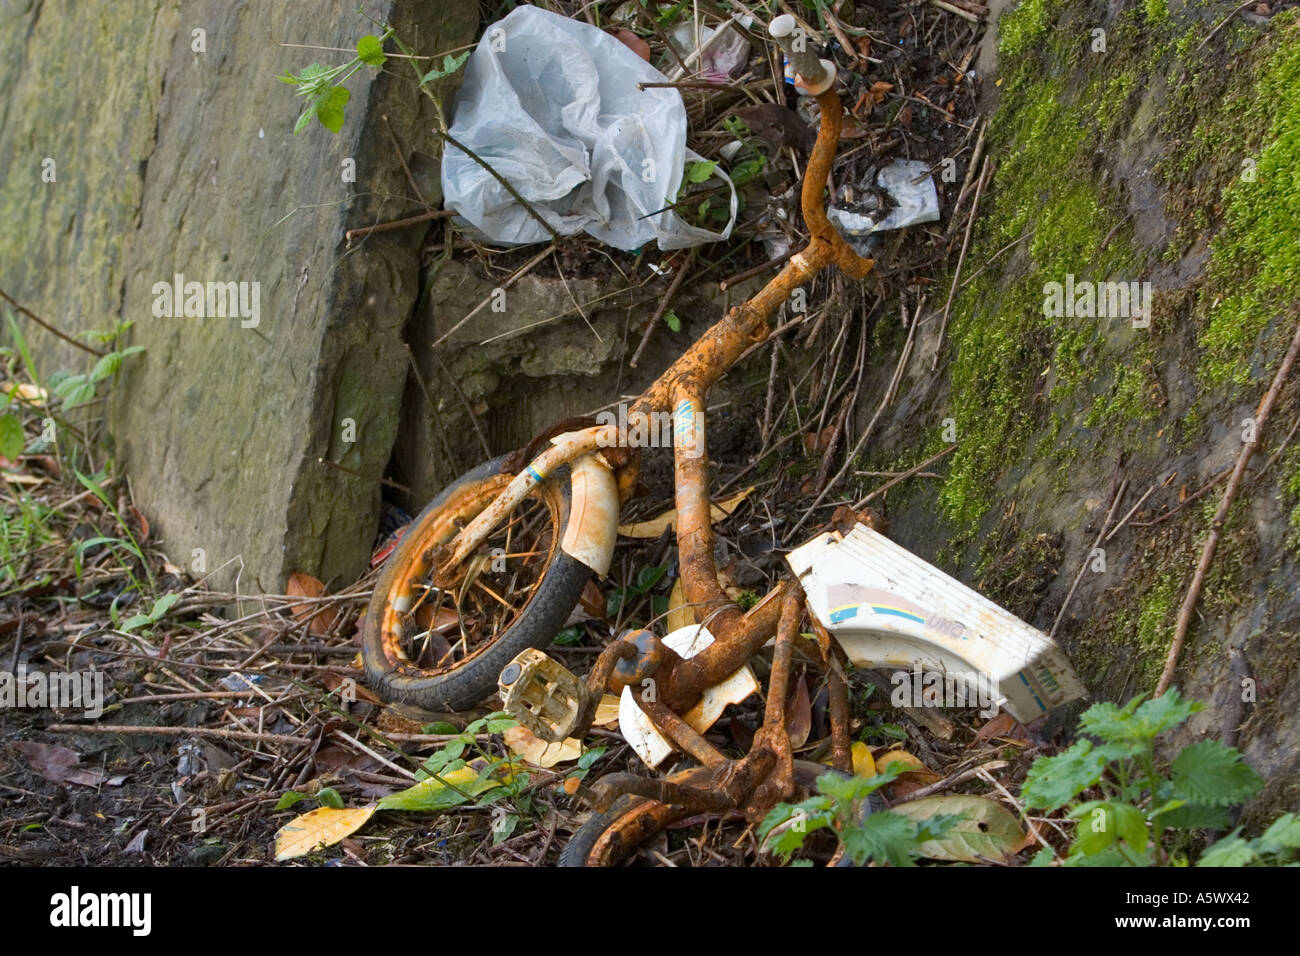 Rusty bicycle and plastic bag thrown away on canal towpath - Stock Image